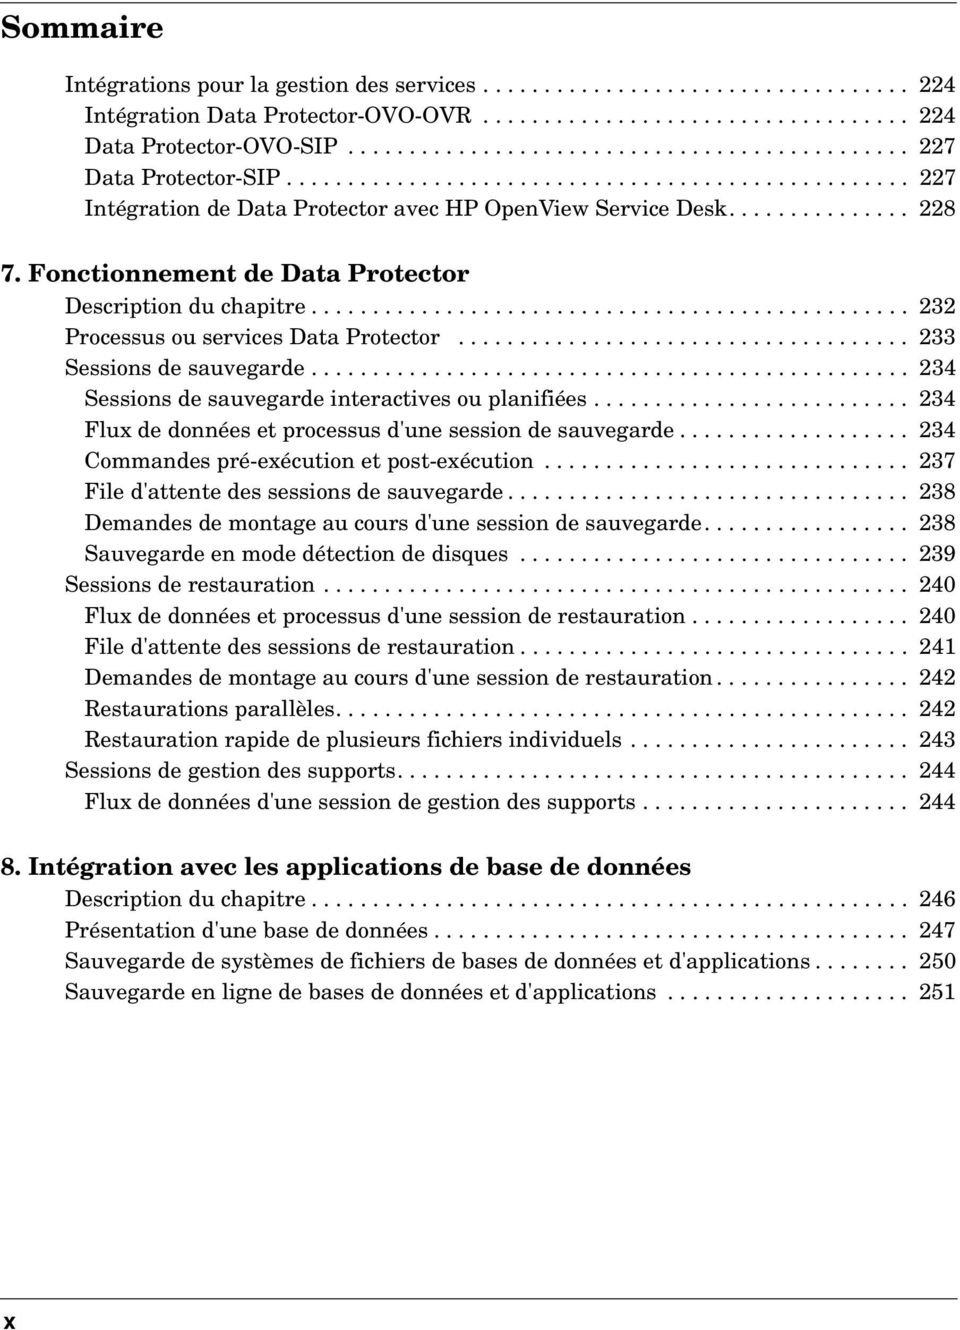 Fonctionnement de Data Protector Description du chapitre................................................. 232 Processus ou services Data Protector..................................... 233 Sessions de sauvegarde.